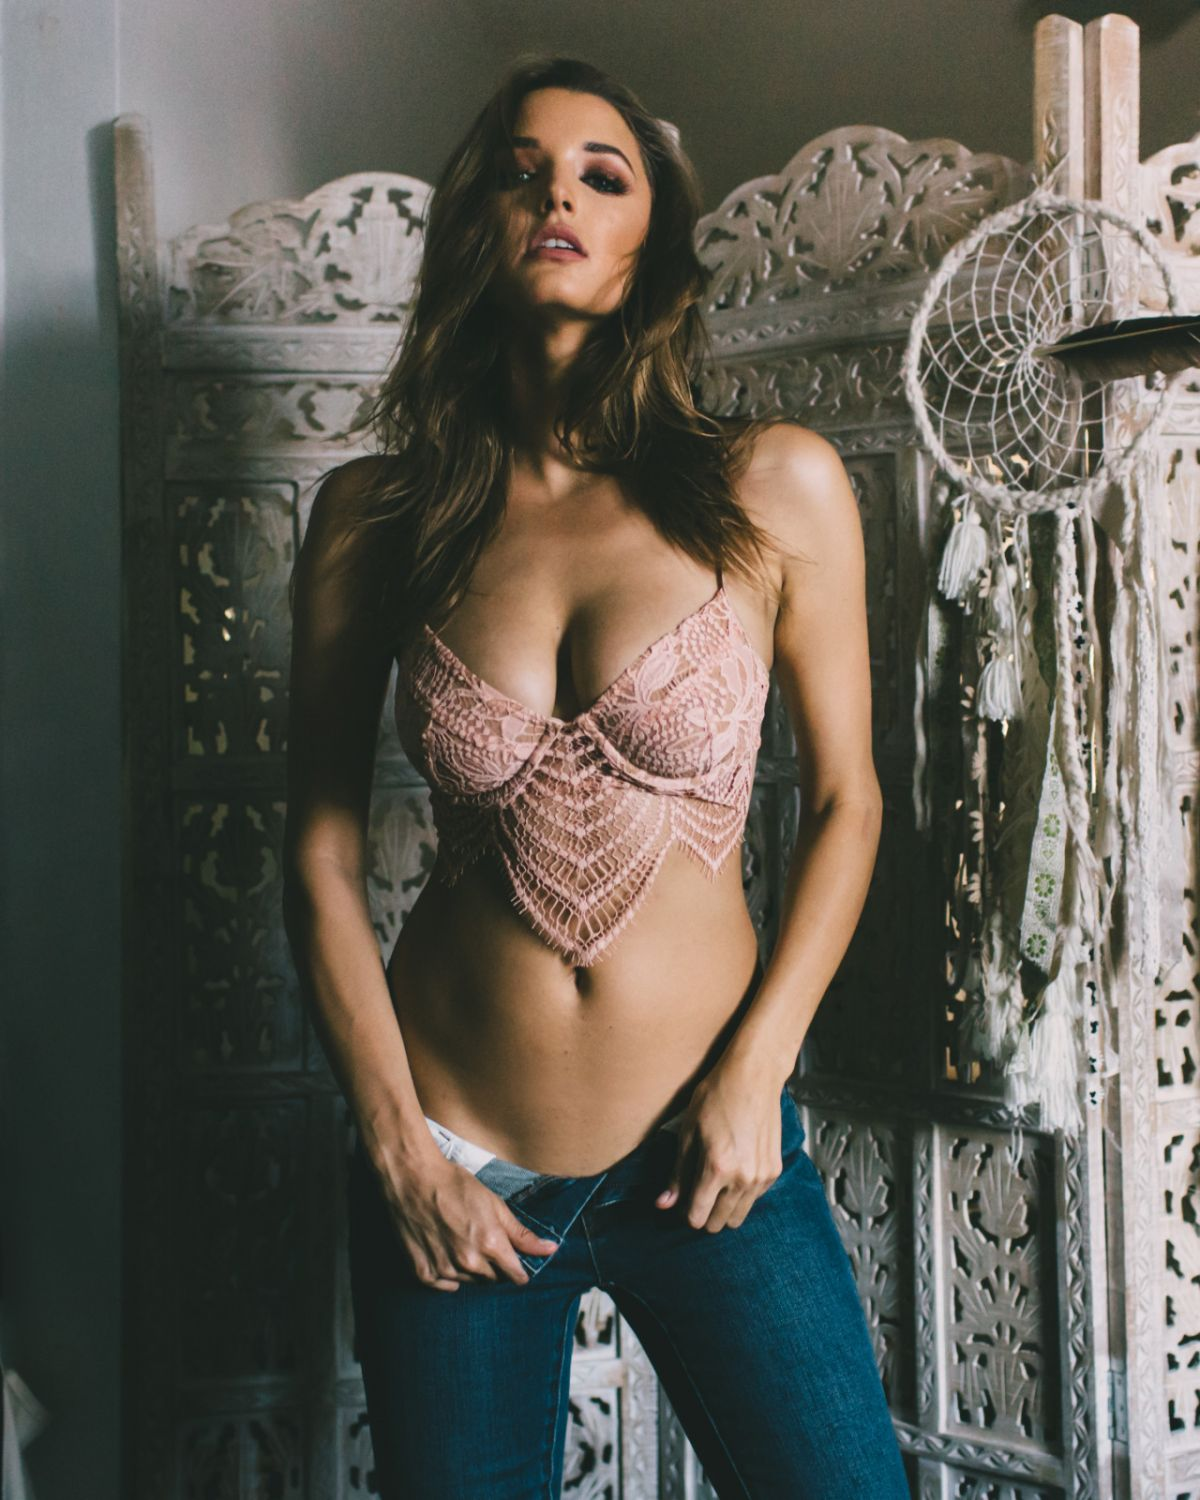 Alyssa Arce At Corey Epstein Photoshoot